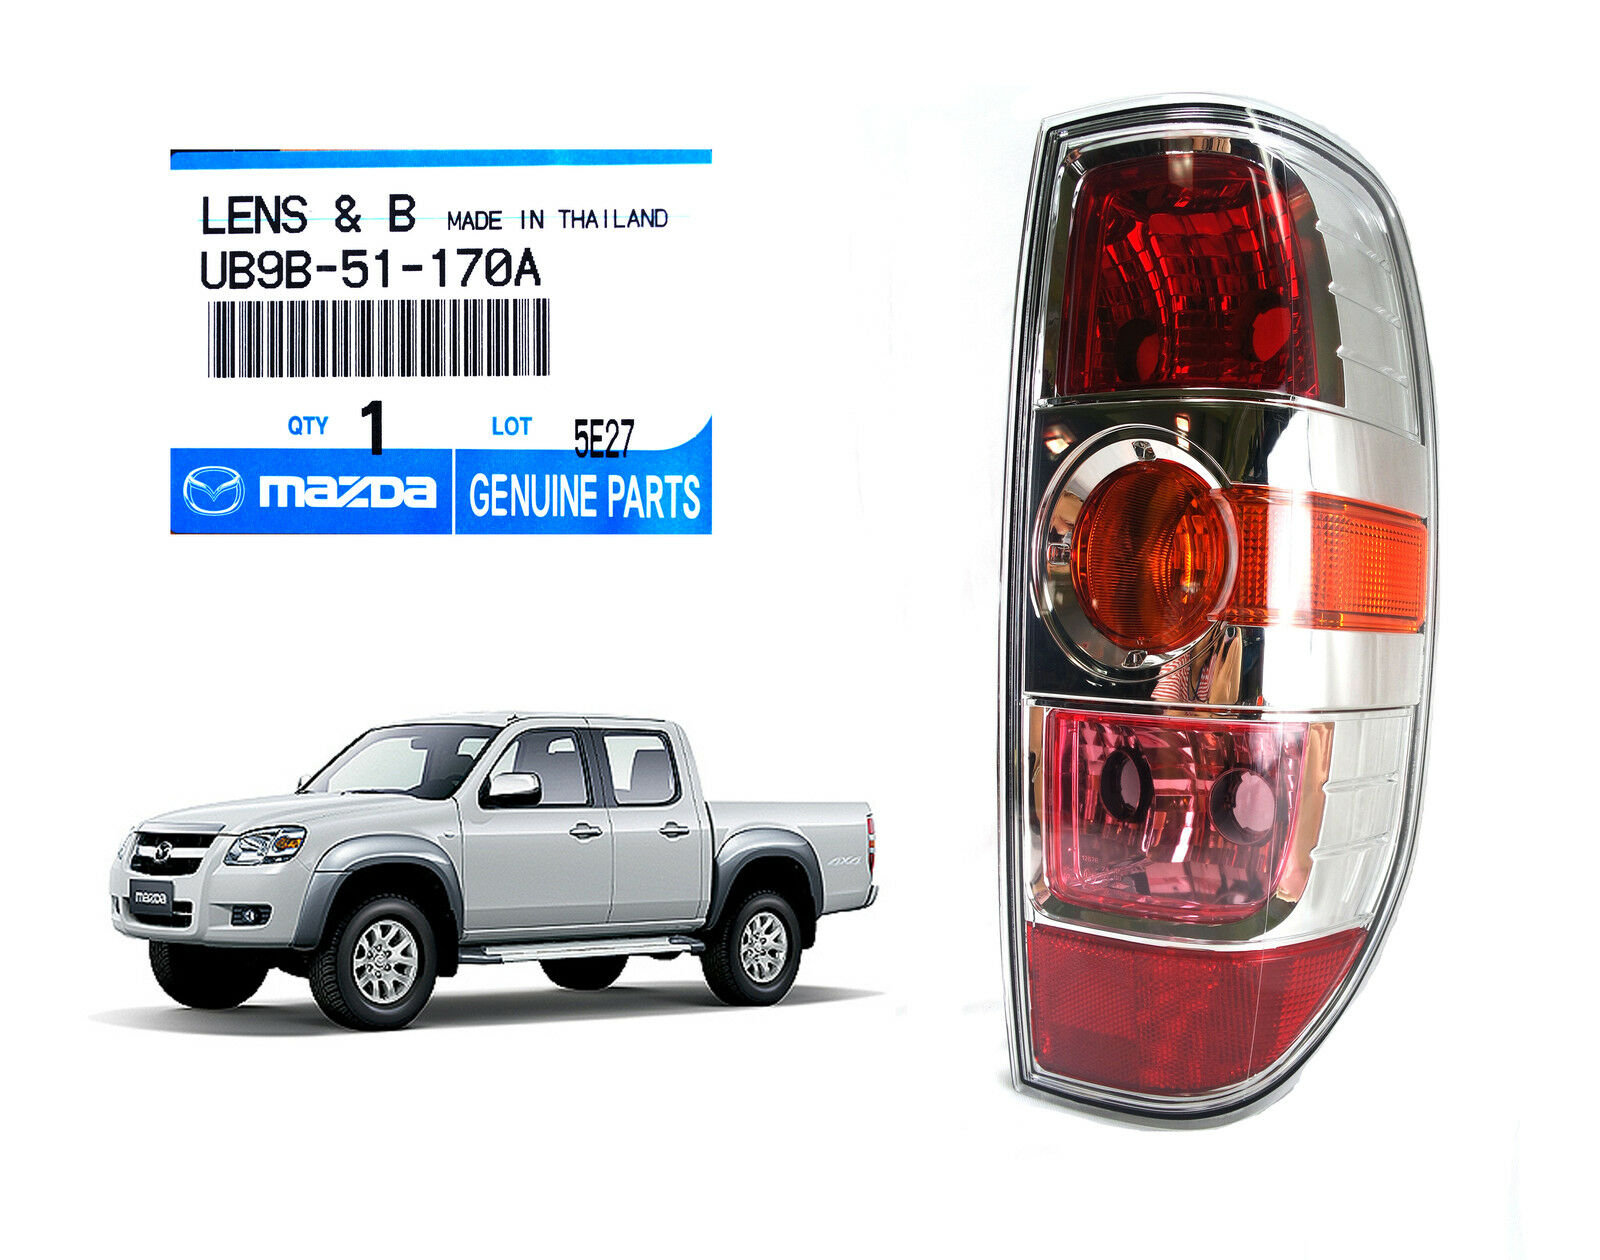 Chrome right rear tail lamp light fit mazda bt50 bt 50 xtr ute pick chrome right rear tail lamp light fit mazda bt50 bt 50 xtr ute pick up 2008 2011 thecheapjerseys Choice Image